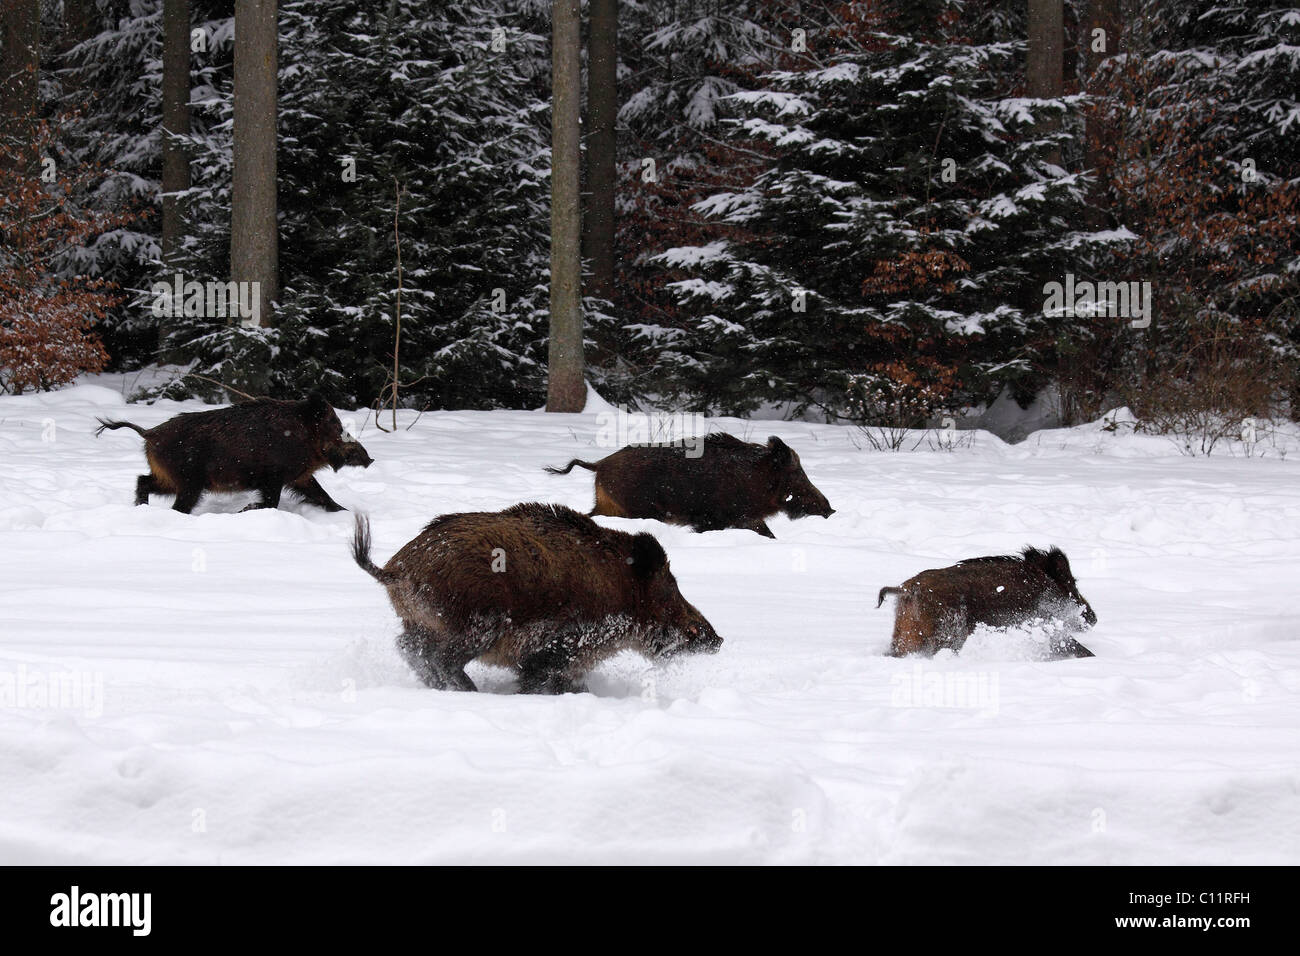 Wild Boars (Sus scrofa) fleeing into the woods in winter through the snow - Stock Image